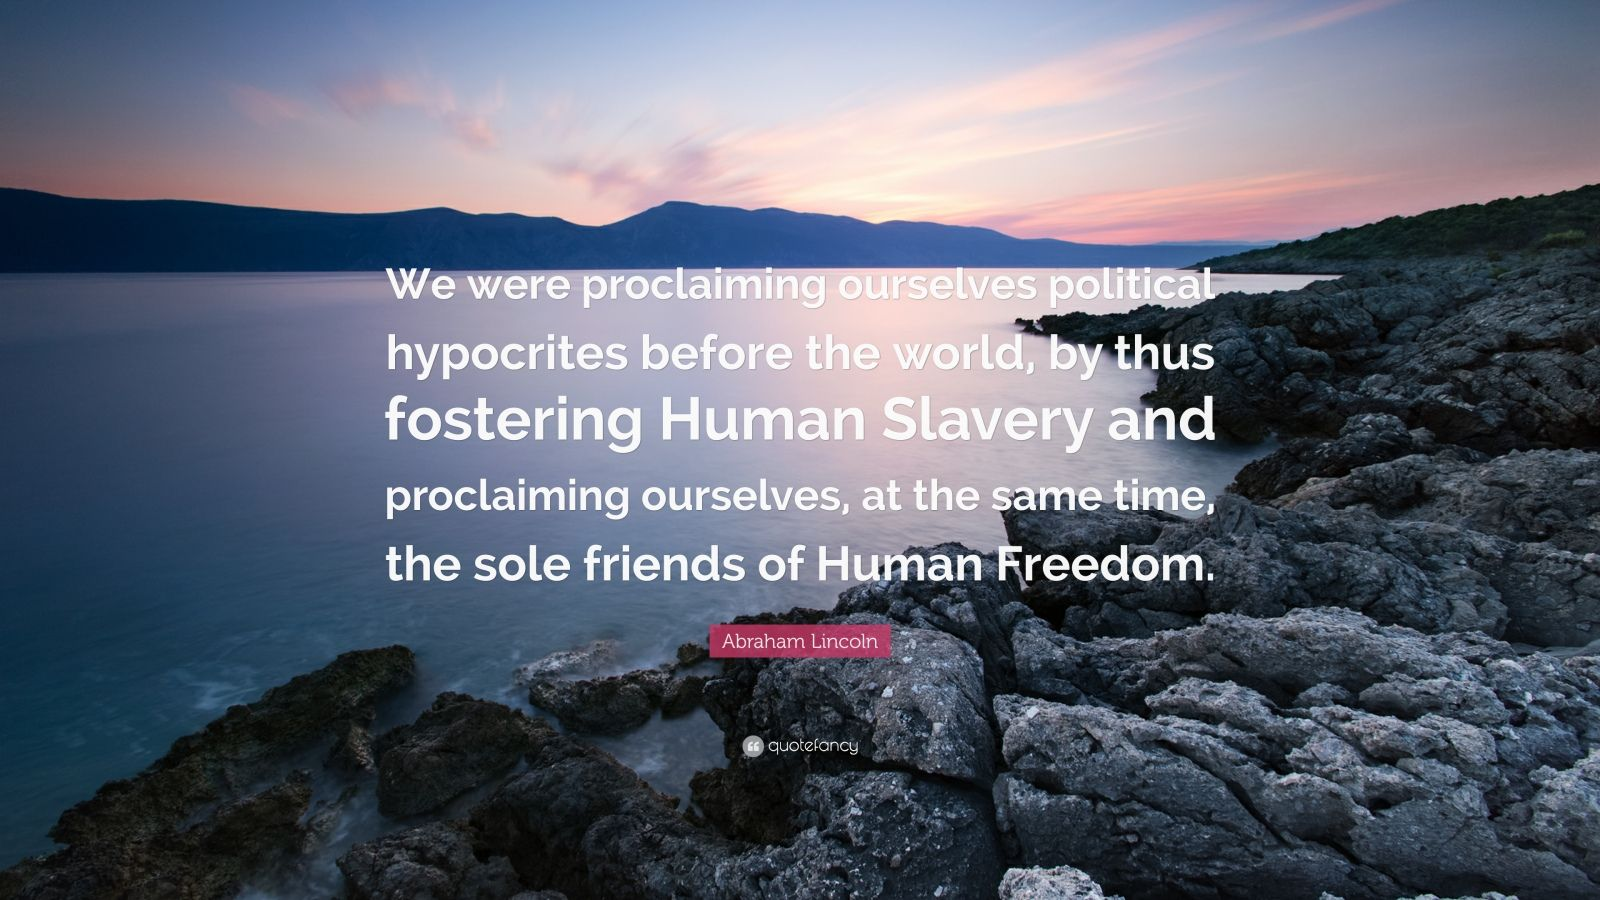 """Abraham Lincoln Quote: """"We were proclaiming ourselves political hypocrites before the world, by thus fostering Human Slavery and proclaiming ourselves, at the same time, the sole friends of Human Freedom."""""""